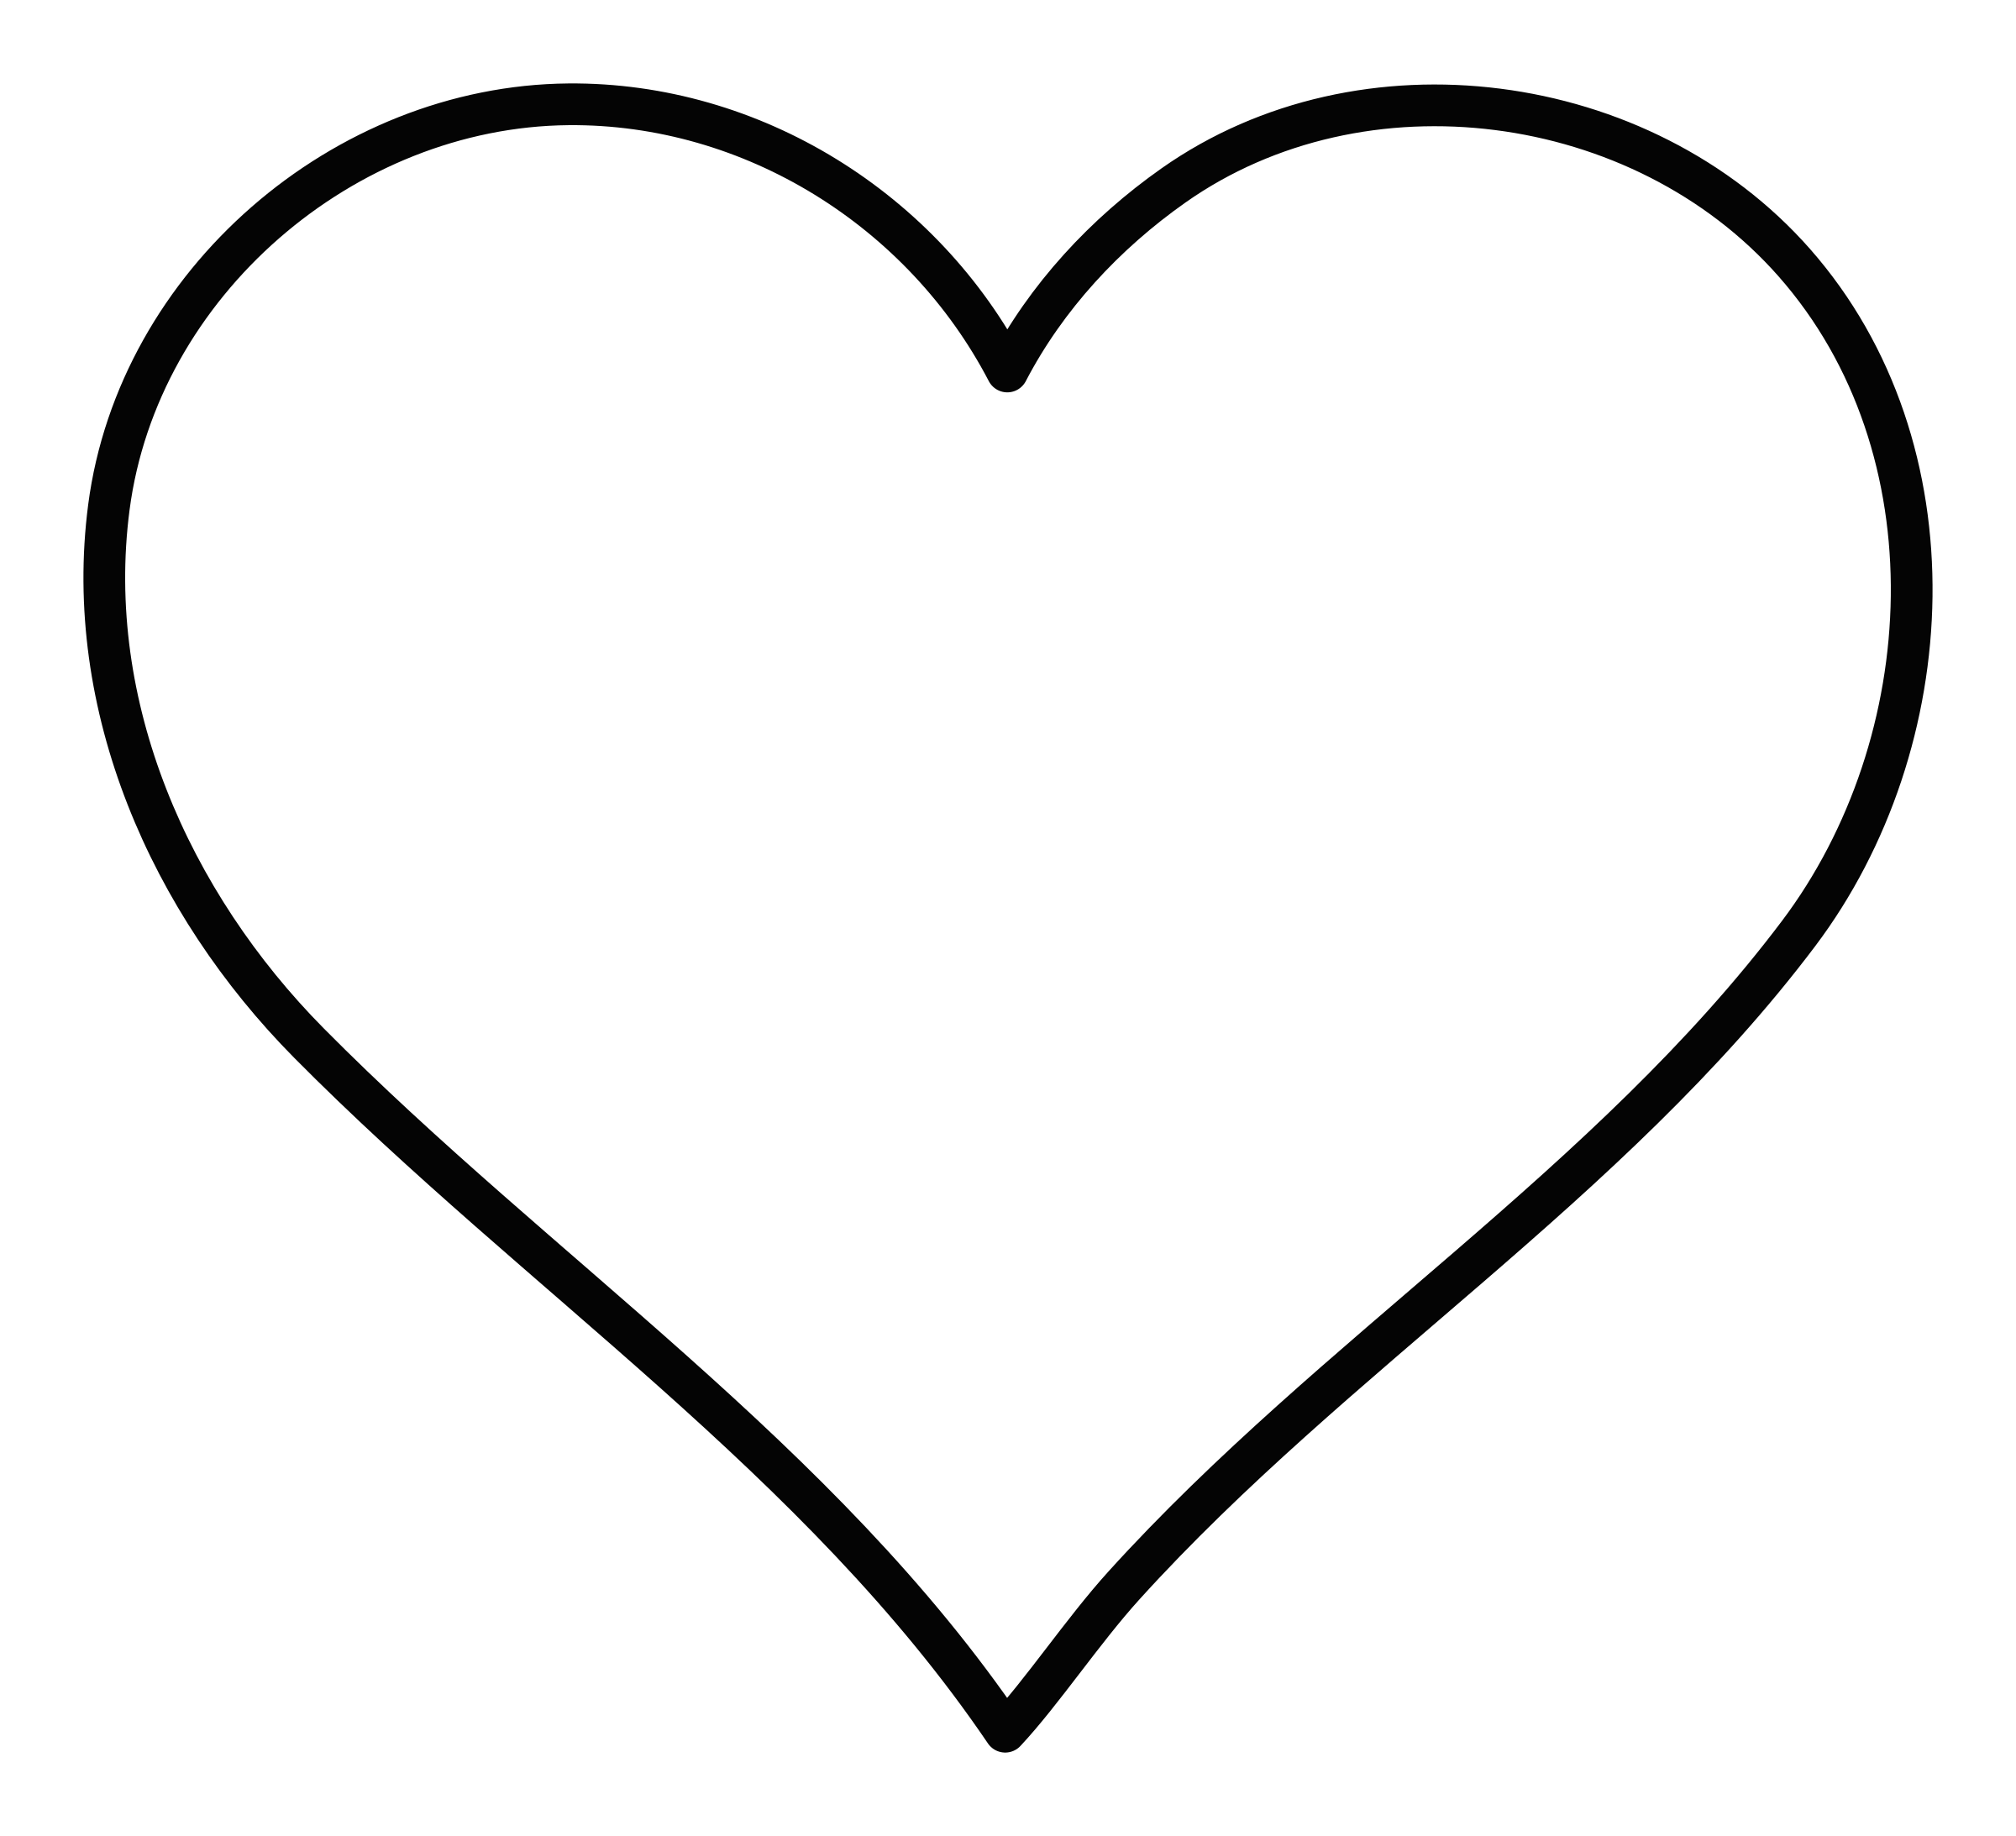 Heart book clipart picture royalty free stock Heart transparent PNG - StickPNG picture royalty free stock